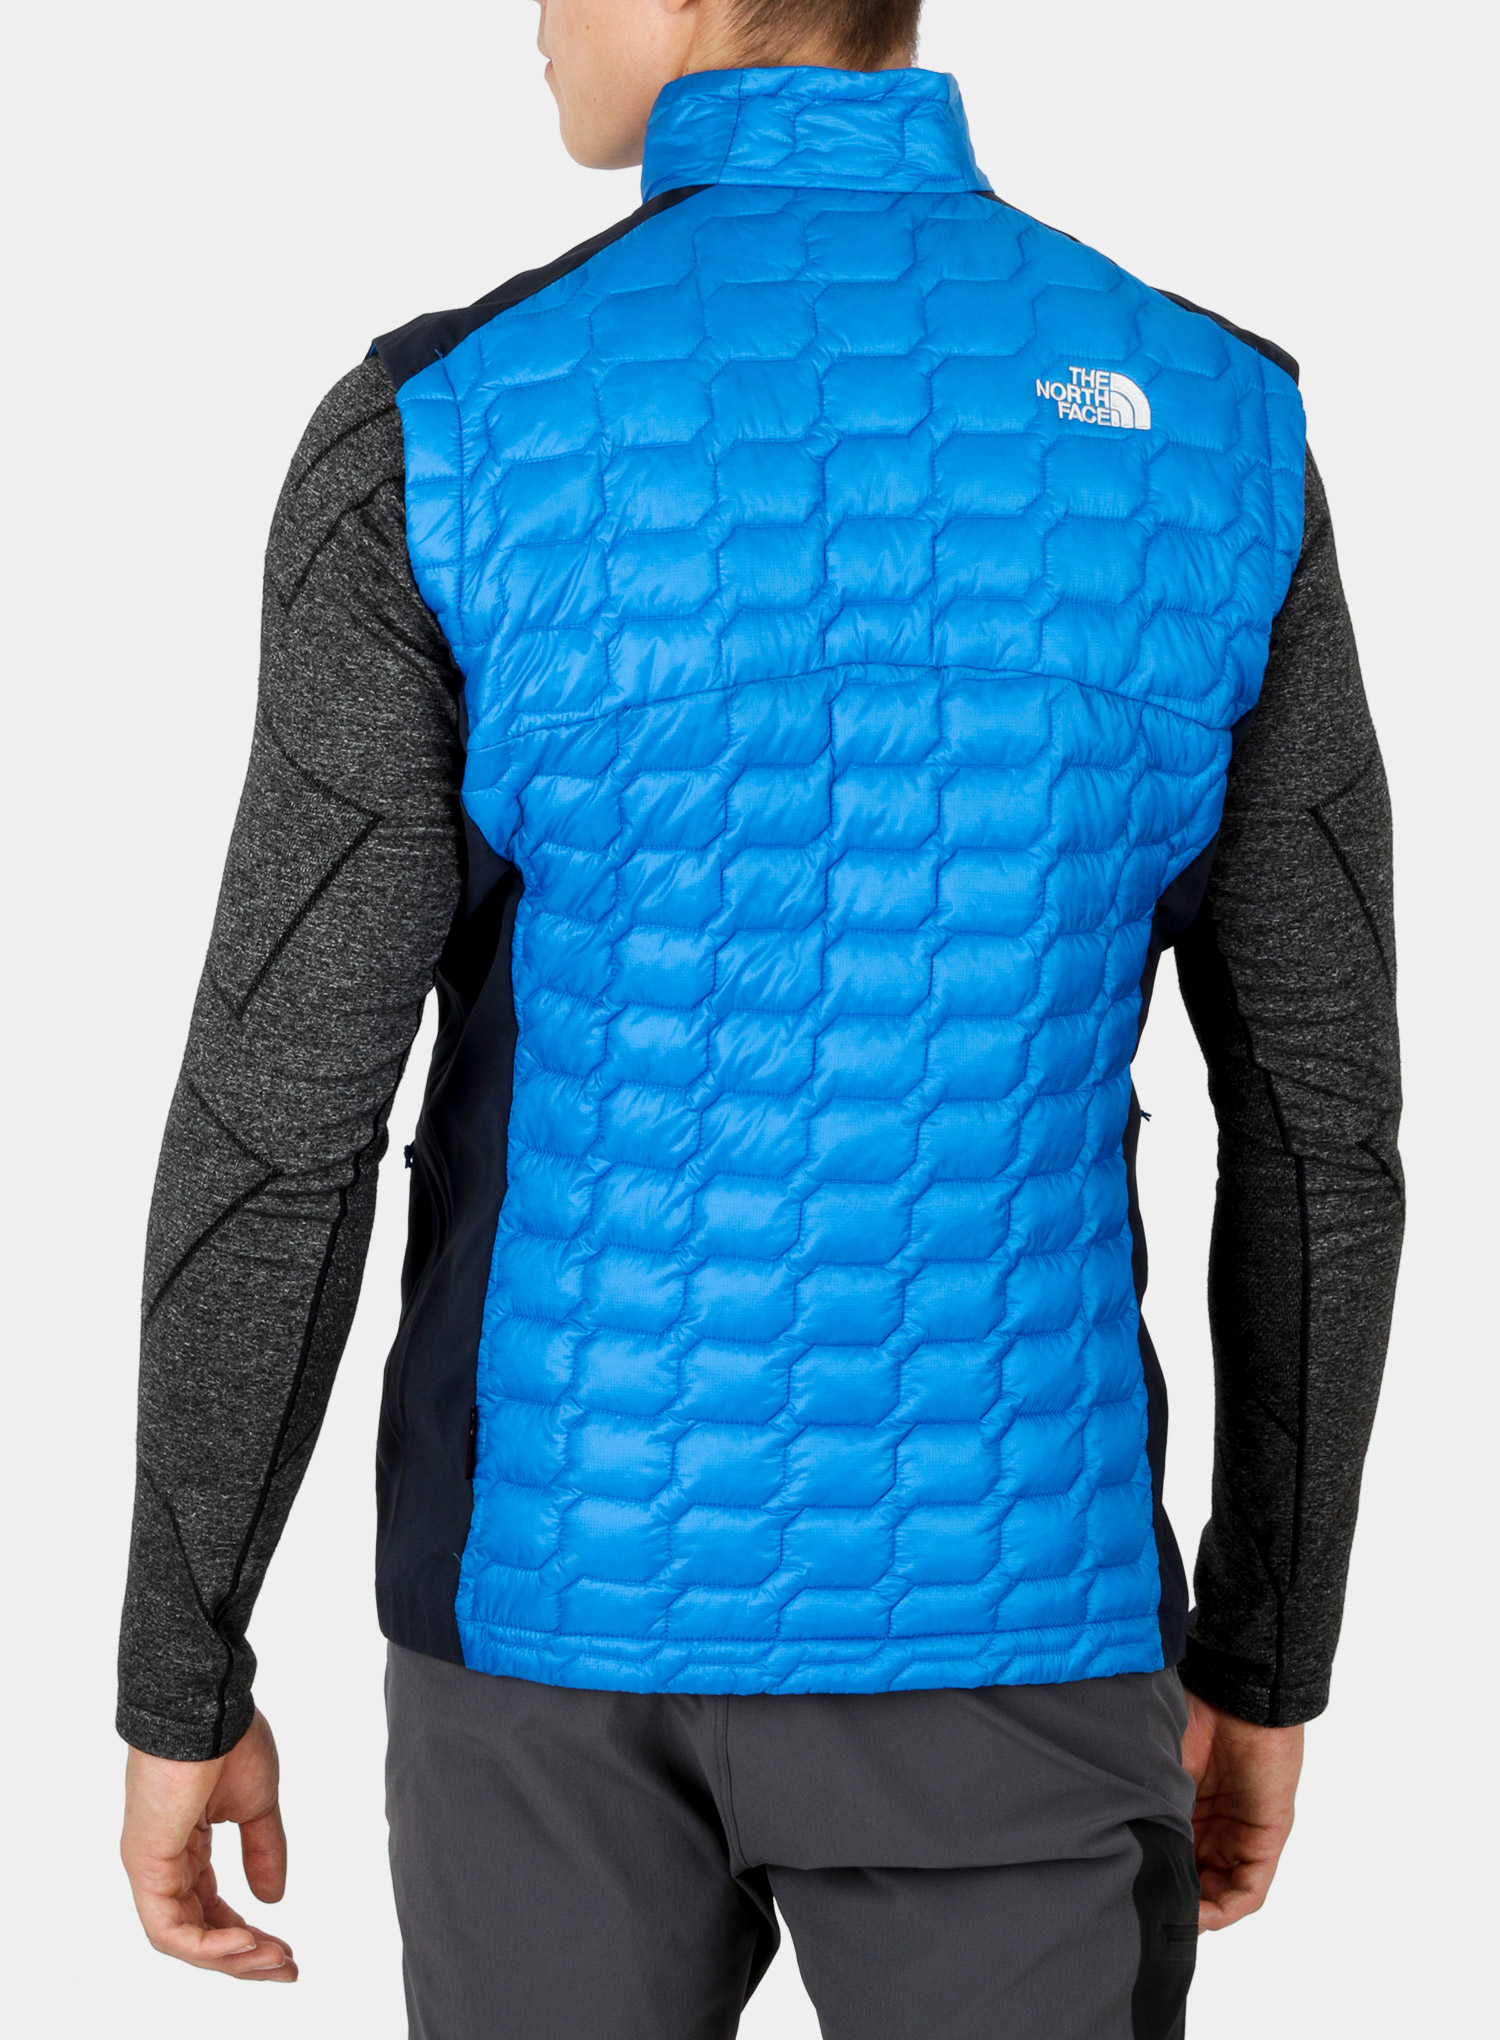 Kamizelka The North Face New Tansa Thermoball Vest - bomber blue/navy - zdjęcie nr. 2